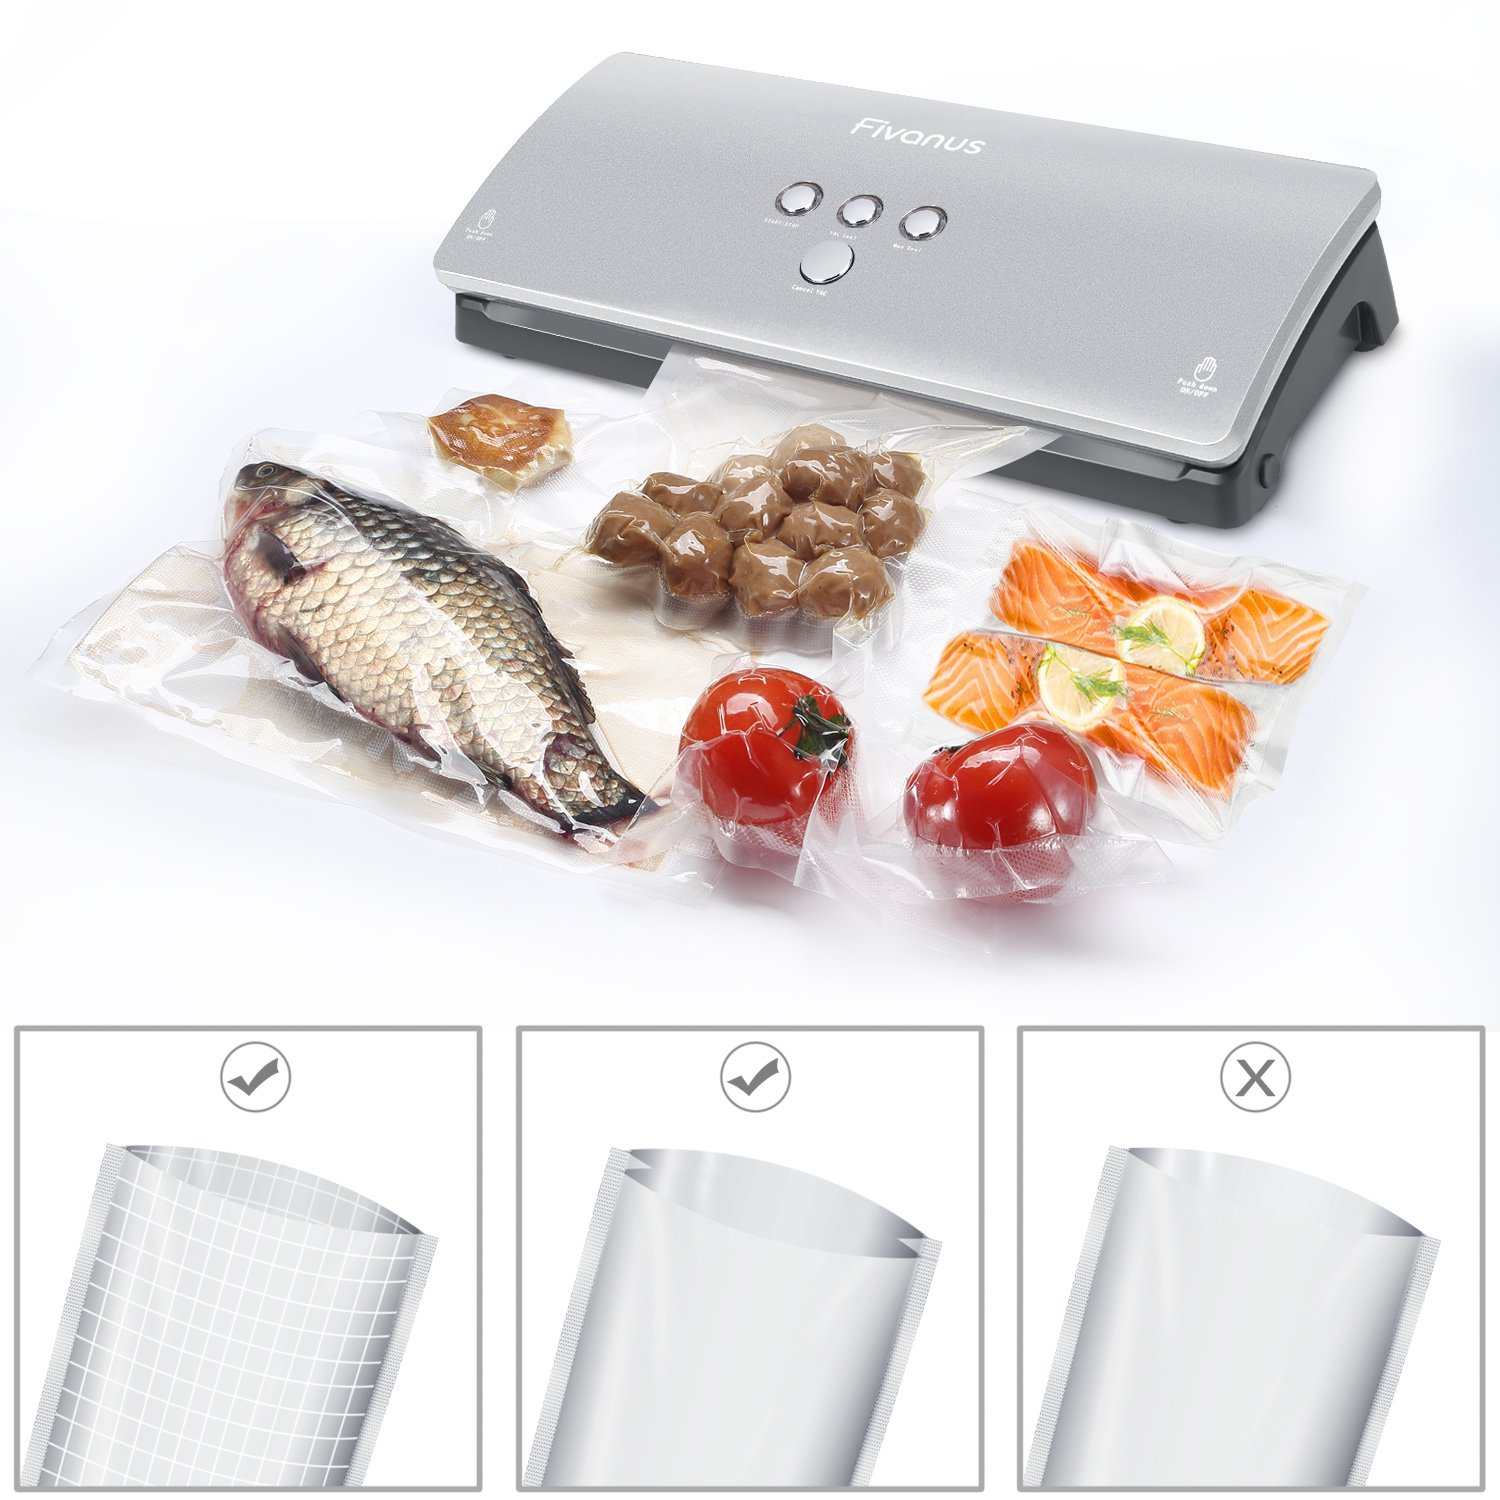 Fivanus Compact Automatic Vacuum Sealer Sealing System with Food Savers Starter Bags - Silver- Buy One Get 2 Pack Food Sealers Rolls